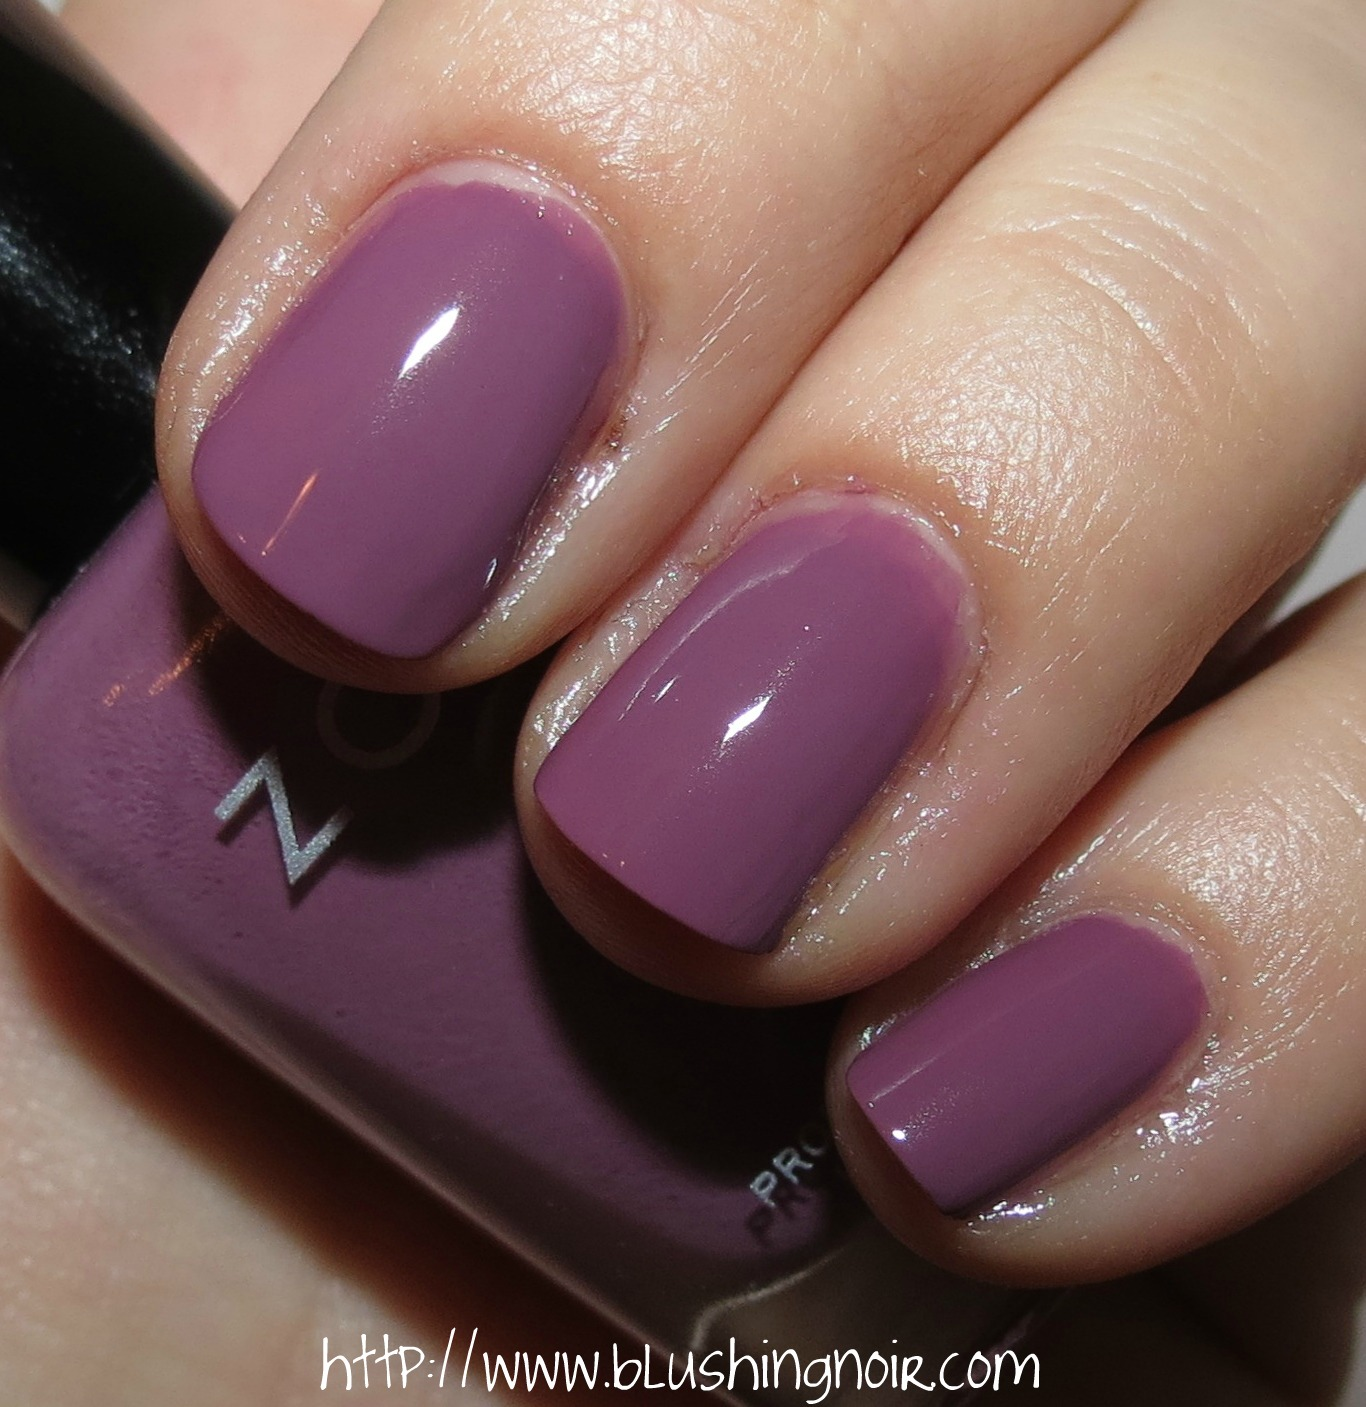 Zoya Odette. Just arrived in the mail today. I don't have good ...